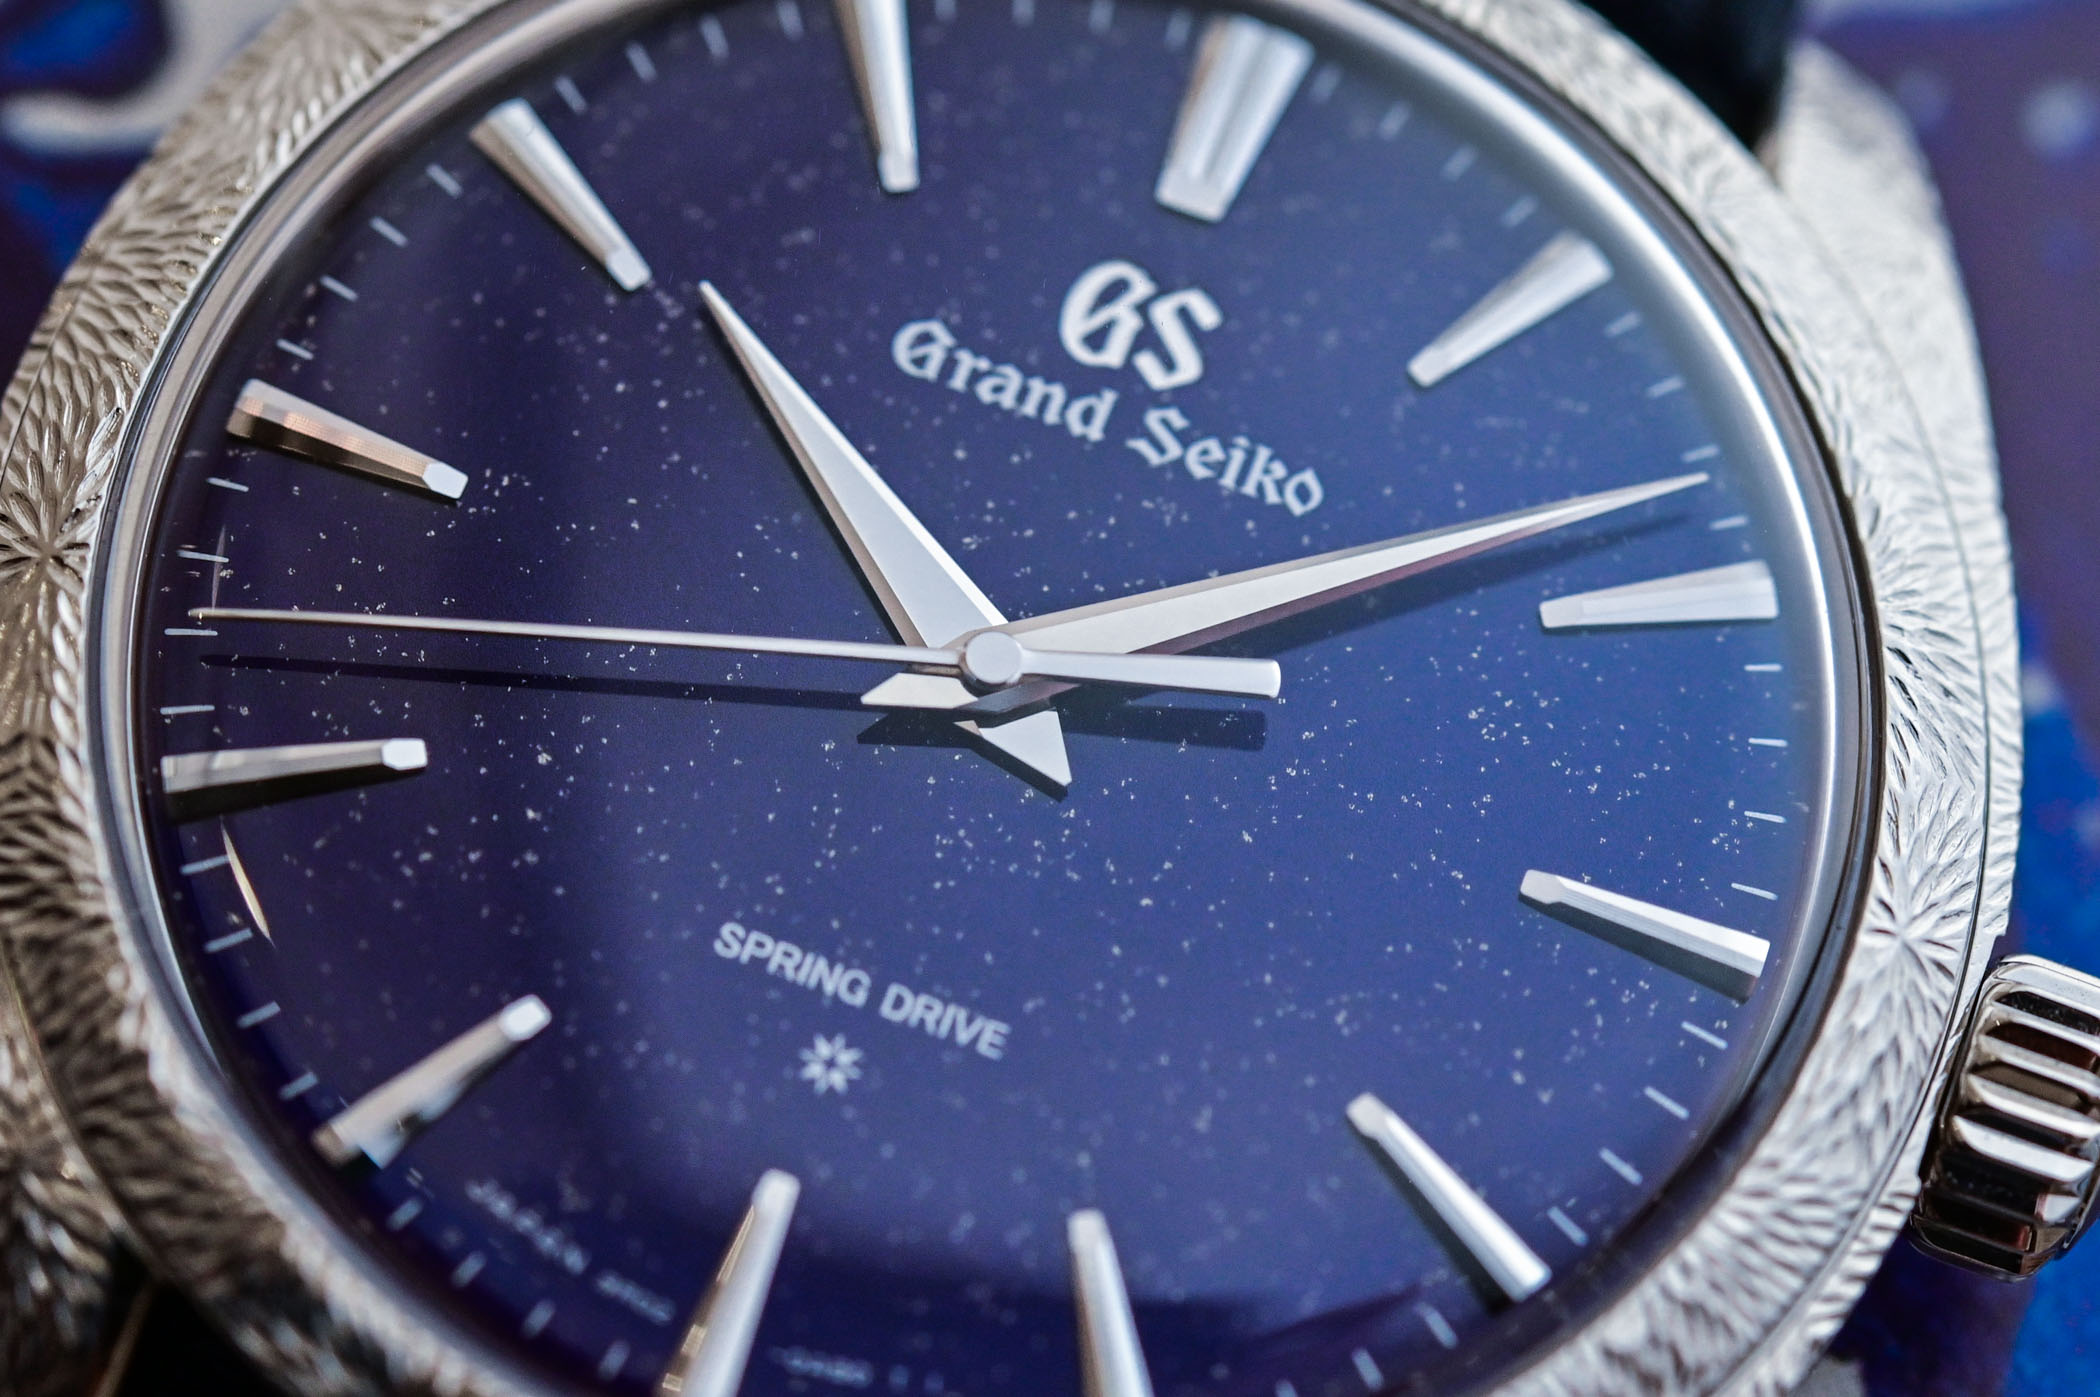 Grand Seiko Masterpiece Collection SBGZ007 Spring Drive 9R02 140th Anniversary Limited Edition